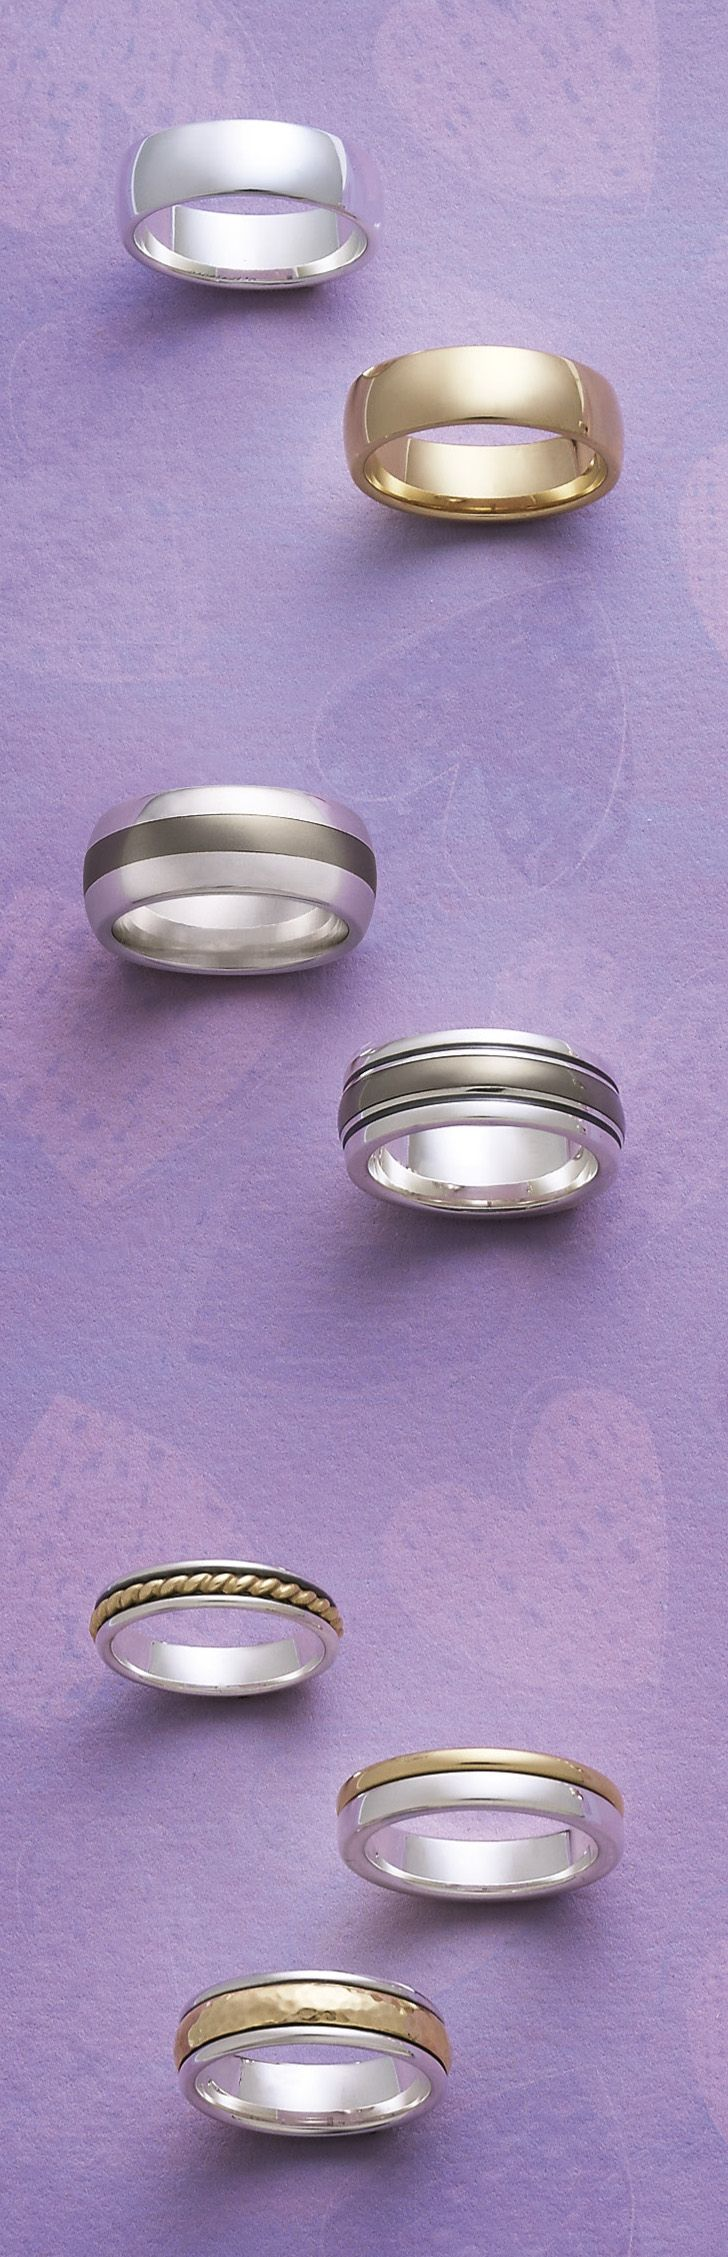 james avery wedding bands jamesavery - James Avery Wedding Rings